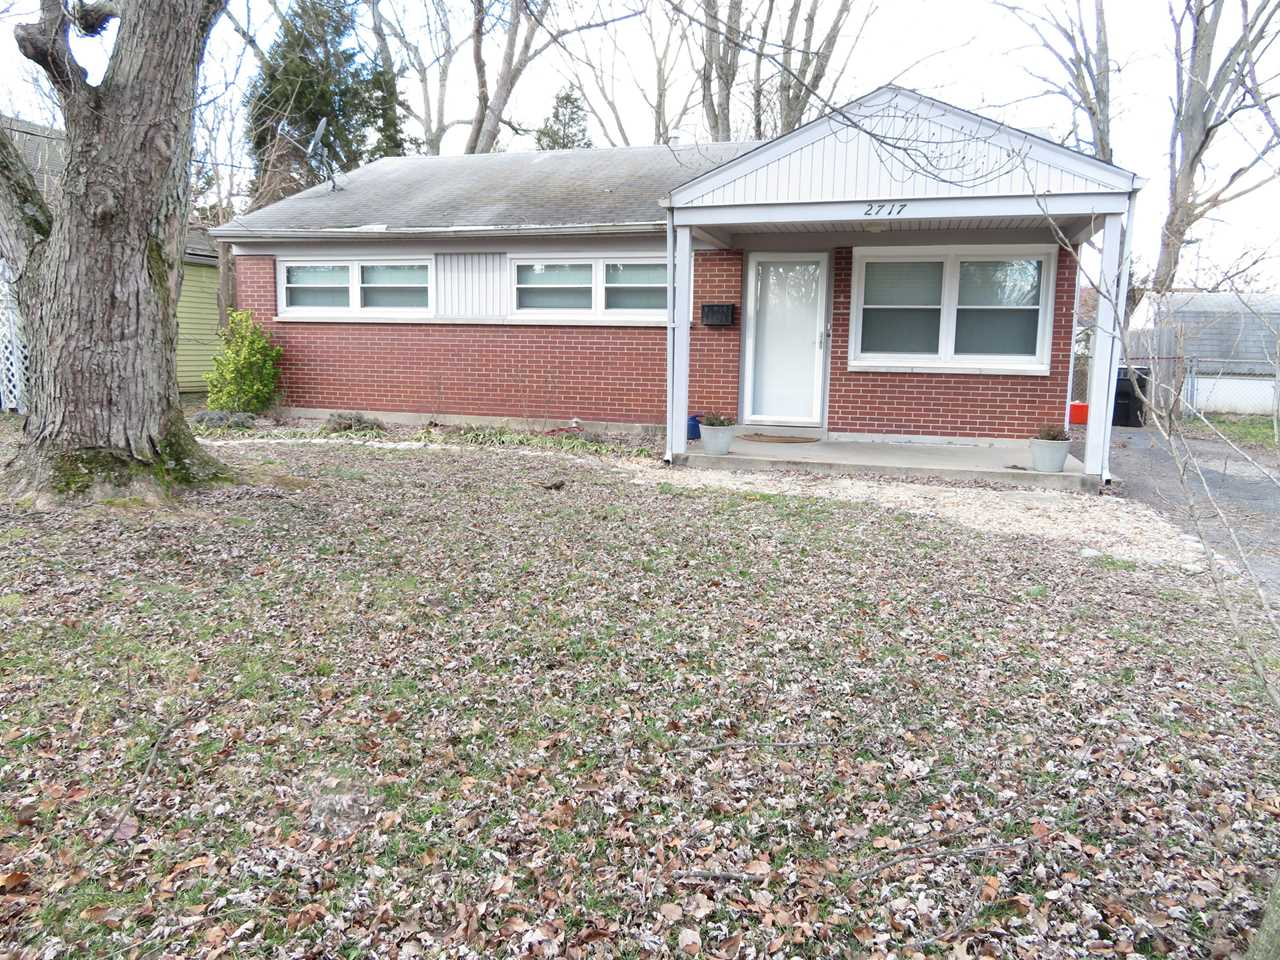 2717 Wendell Ave Louisville KY in Jefferson County - MLS# 1523187 | Real Estate Listings For Sale |Search MLS|Homes|Condos|Farms Photo 1